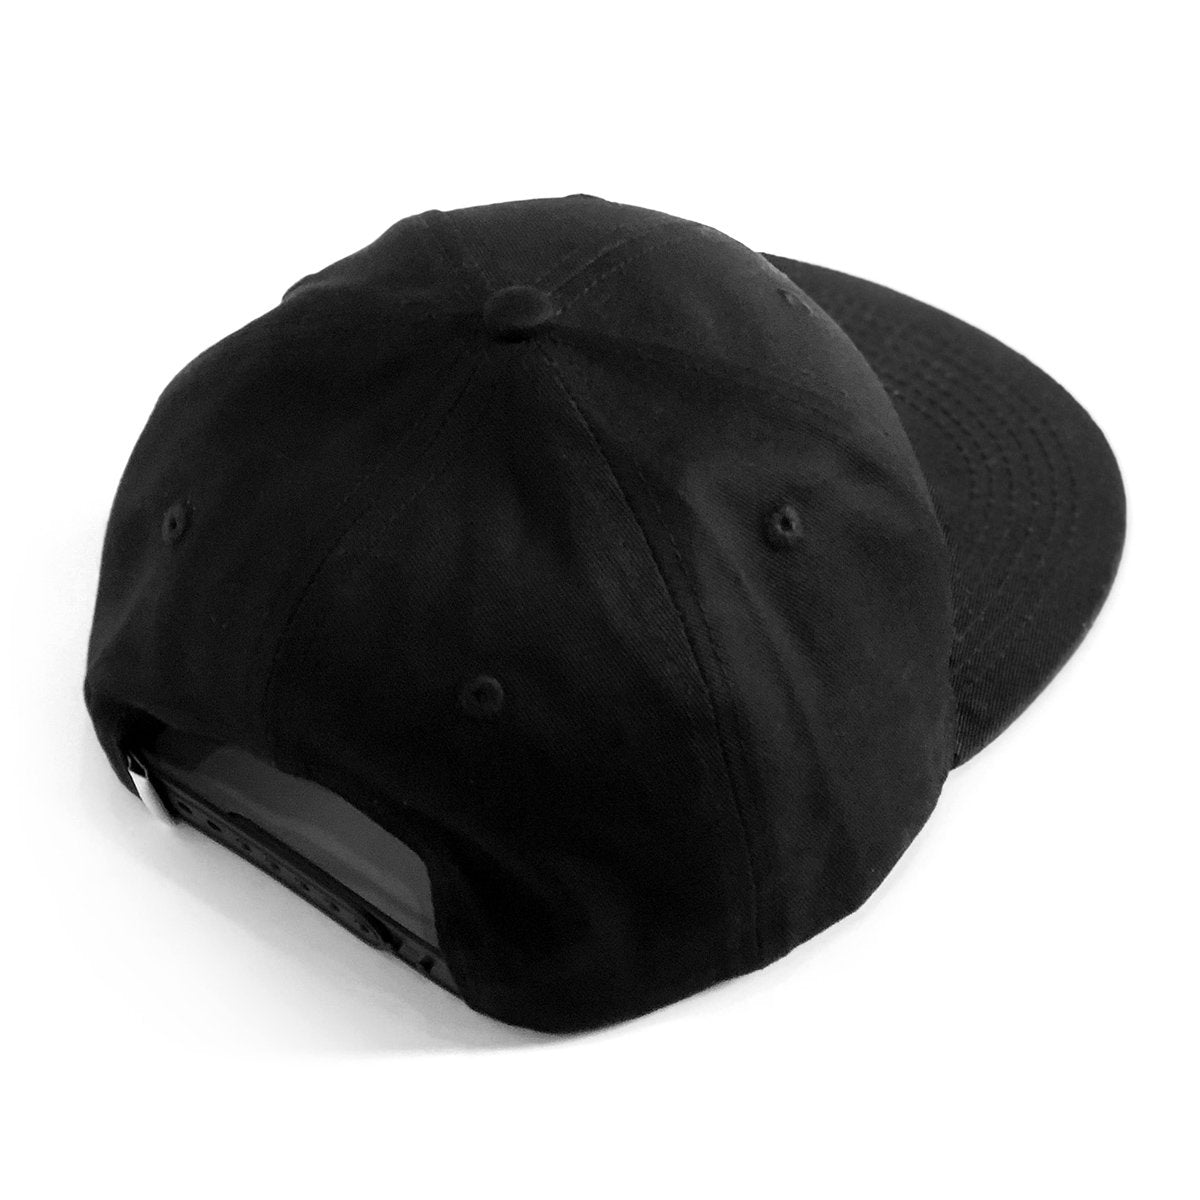 Lost Art Canada - white maple leaf black snapback hat back view